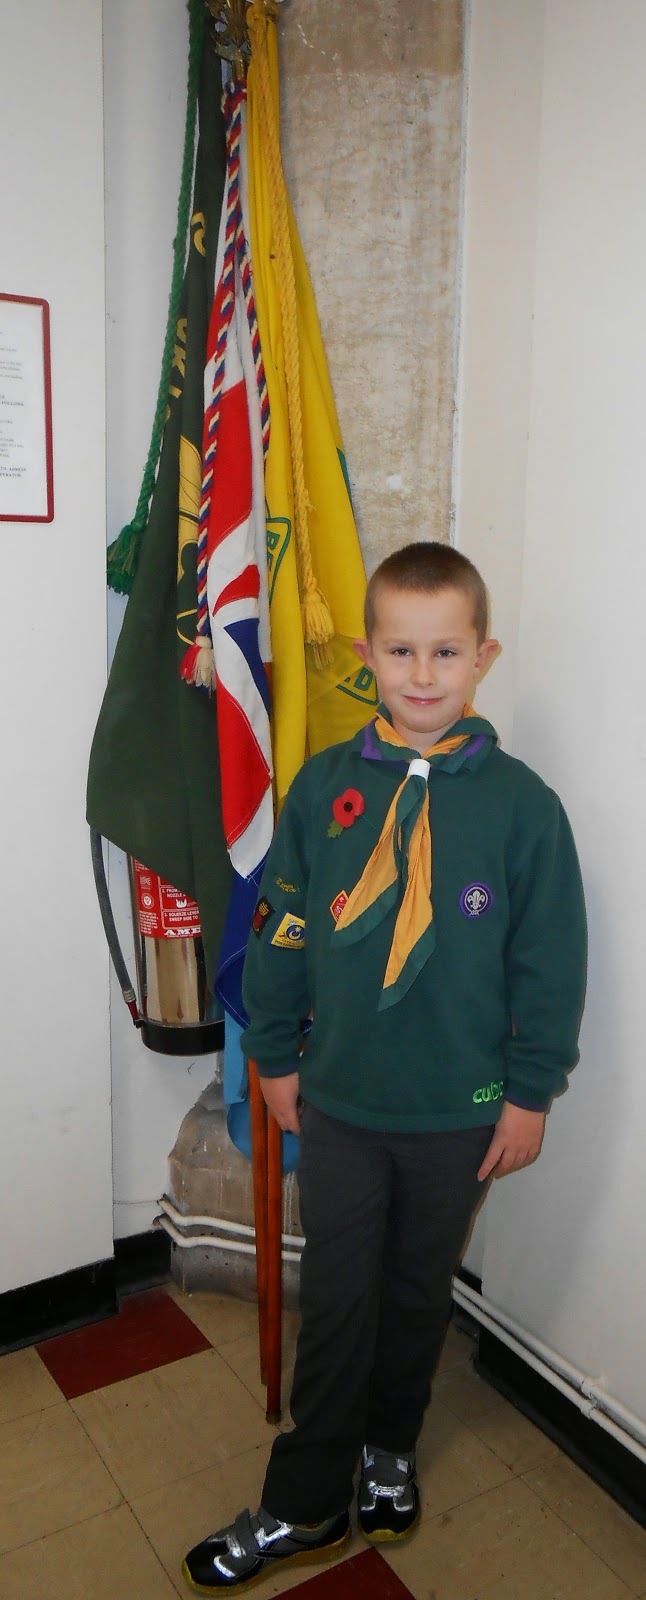 milton st james parish portsmouth cub scout group